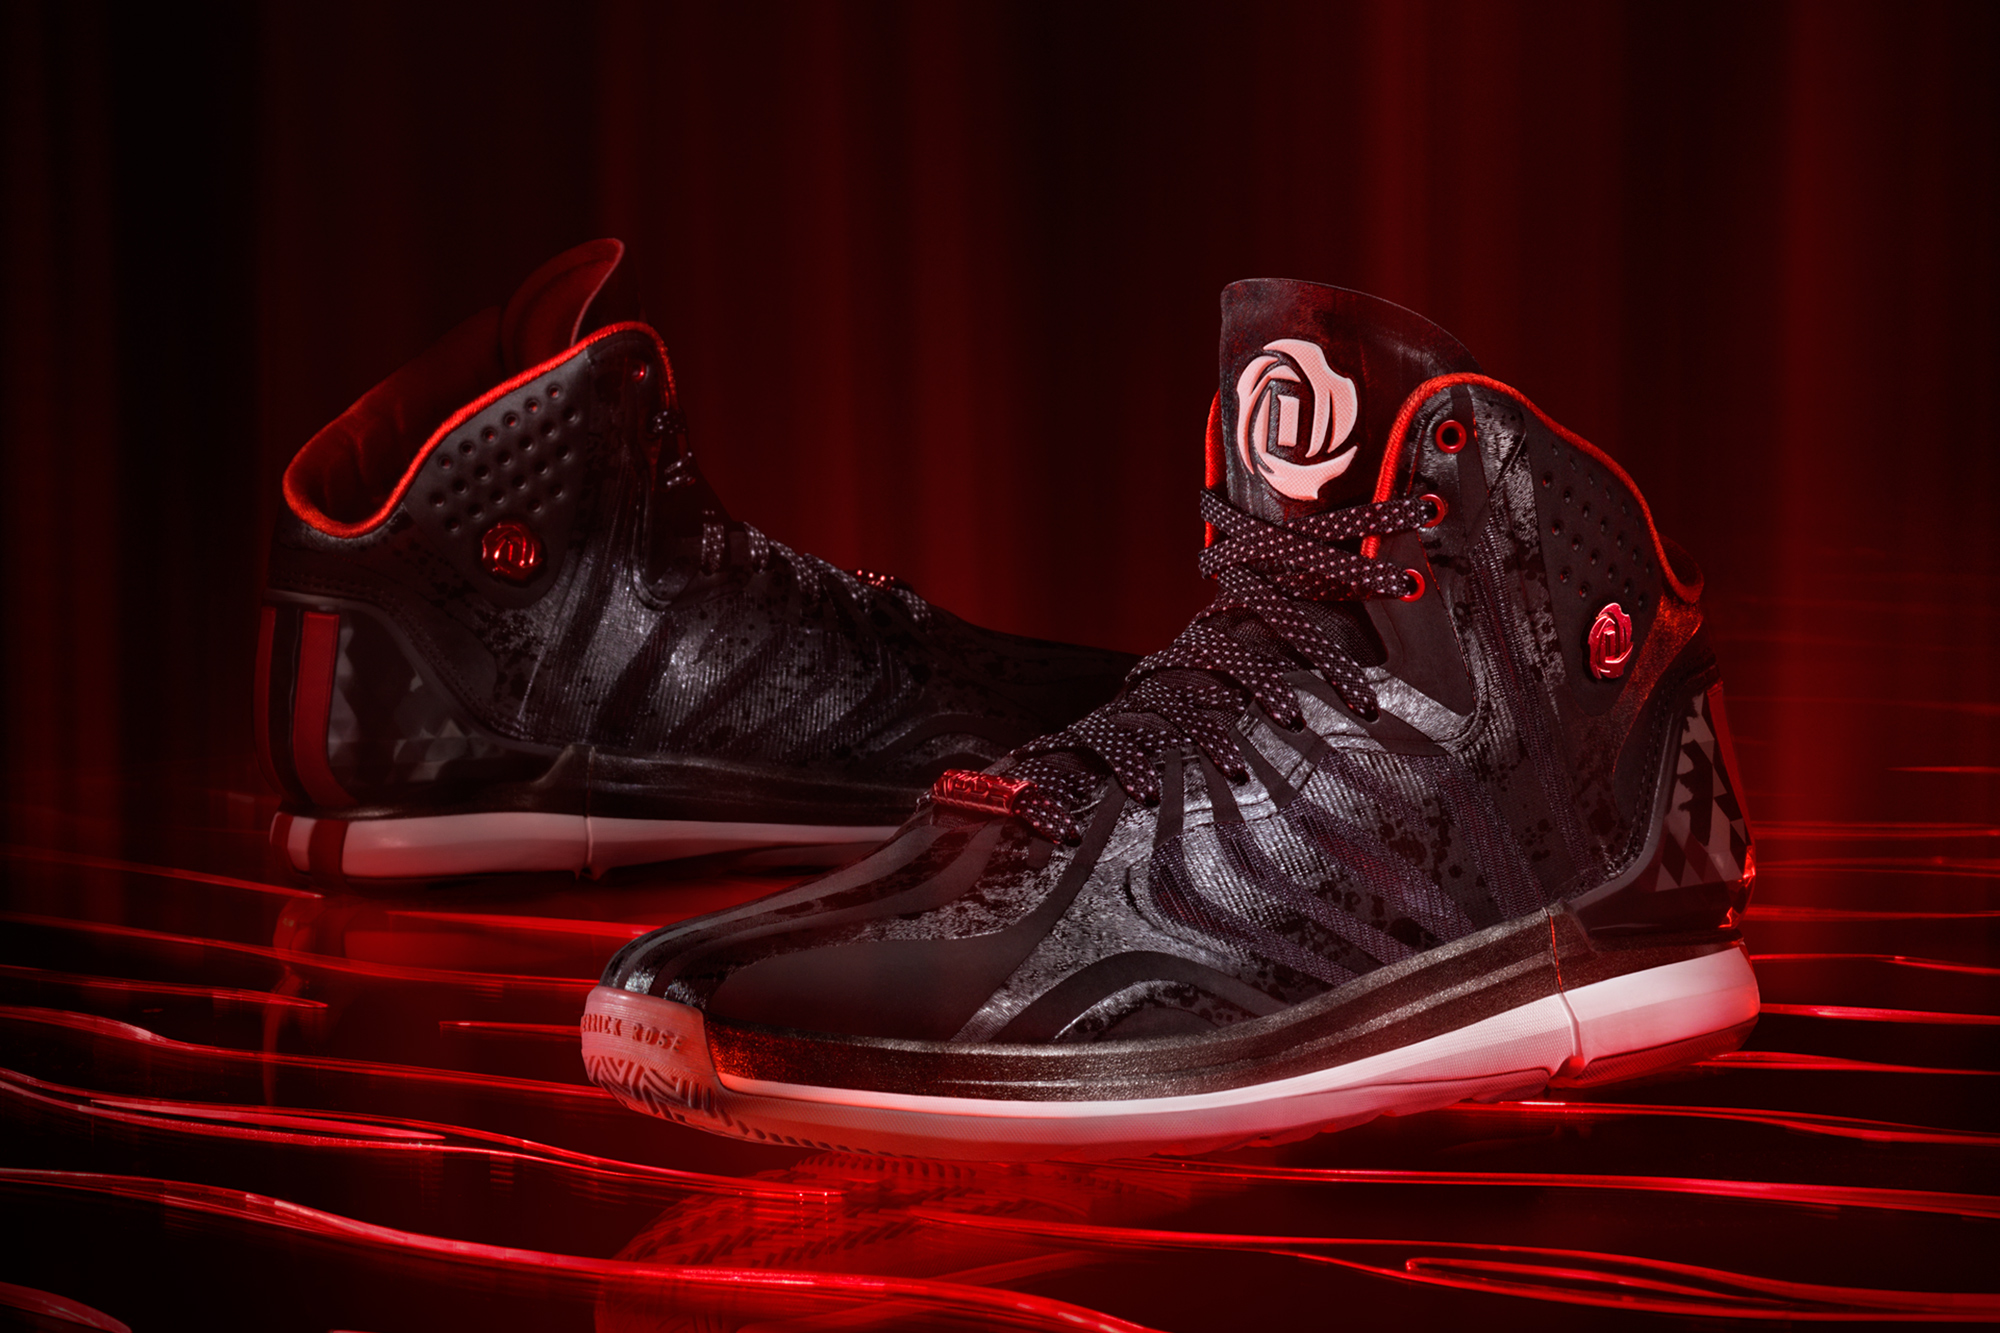 Sports News & Articles Scores, Pictures, Videos - ABC News Pictures of the new derrick rose shoes